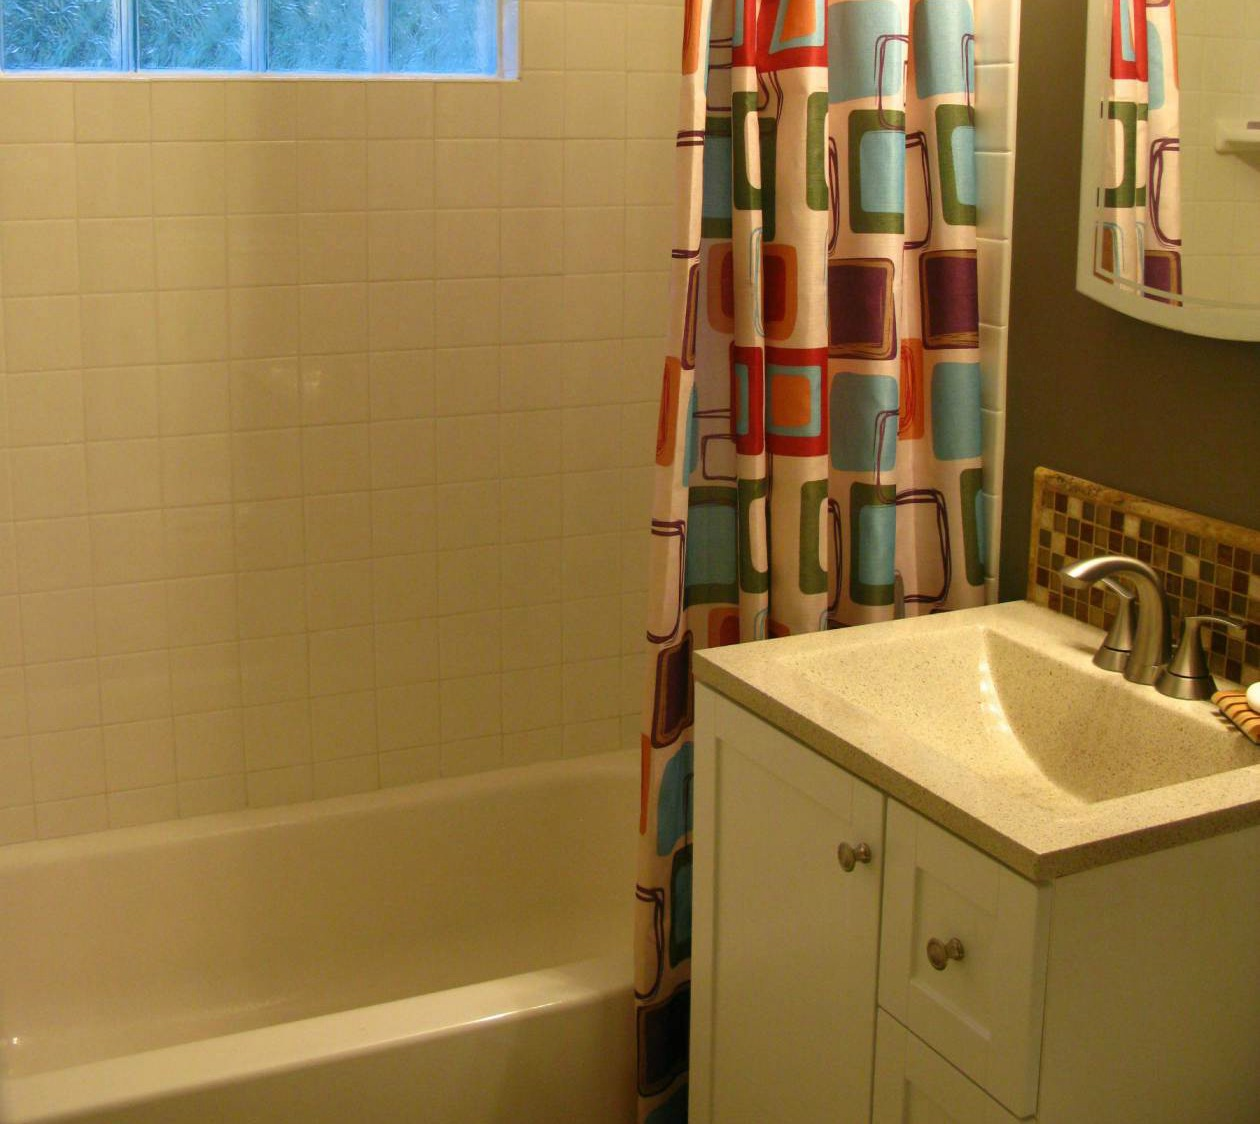 How To Start A Bathroom Remodel Prepossessing Bathroom Remodel From Start To Finish Inspiration